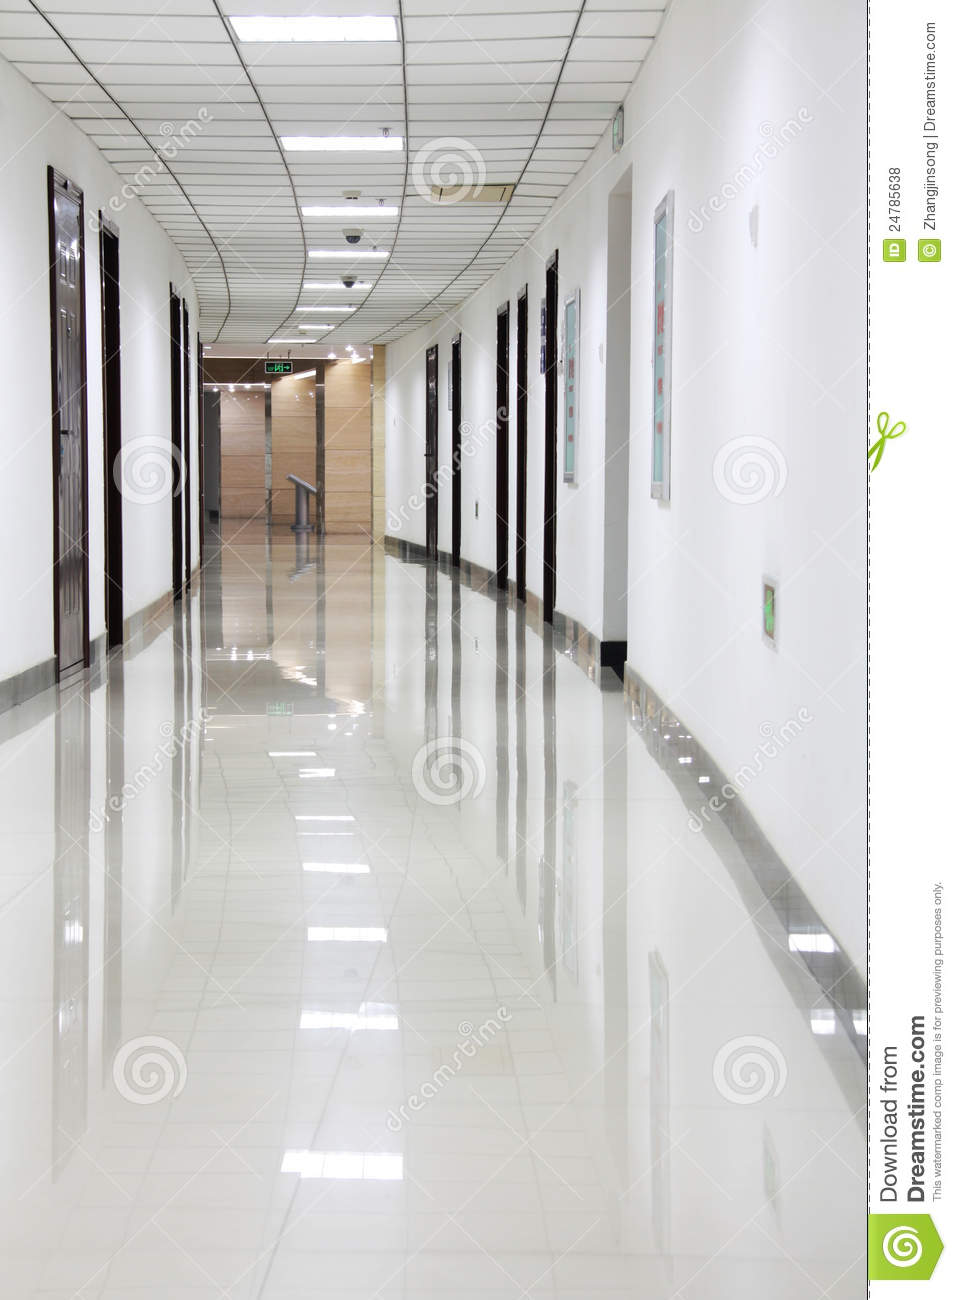 Curved office hallway stock photo image of passageway for Hallway photos